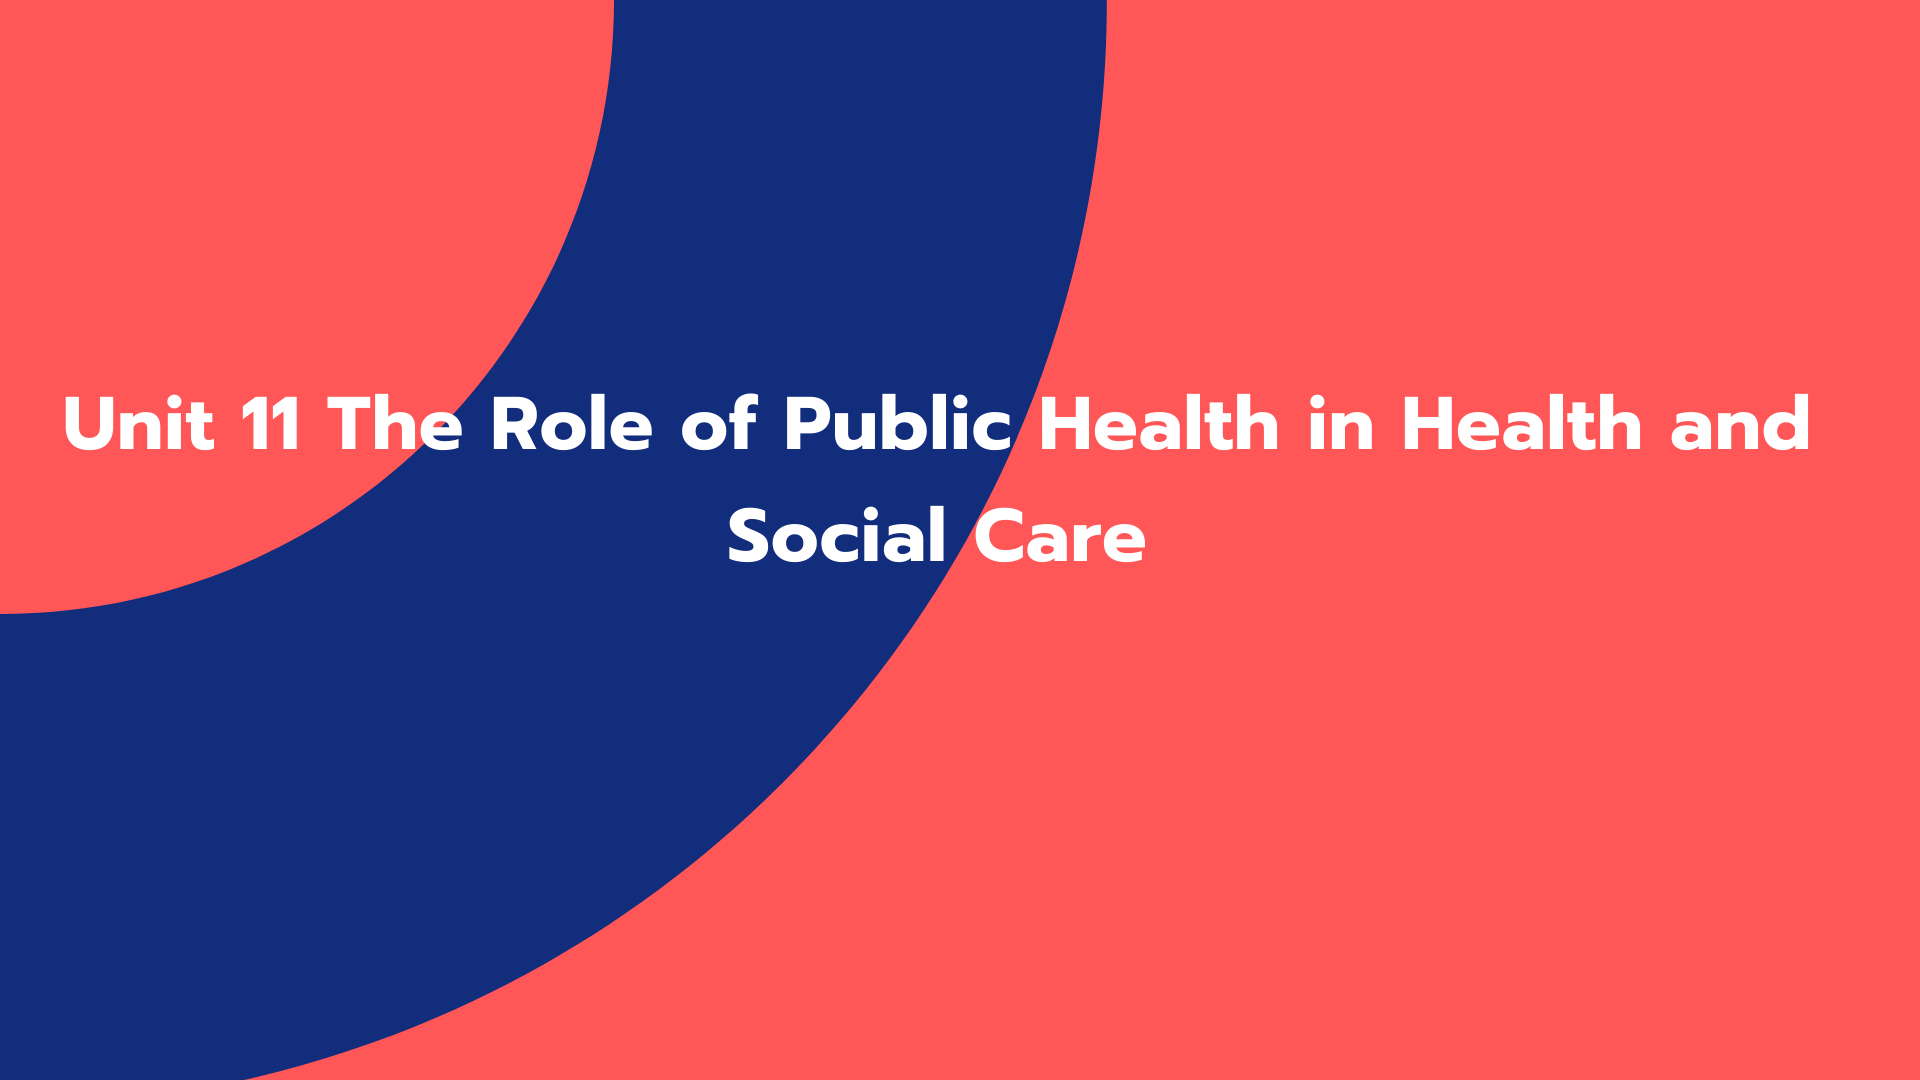 Unit 11 The Role of Public Health in Health and Social Care